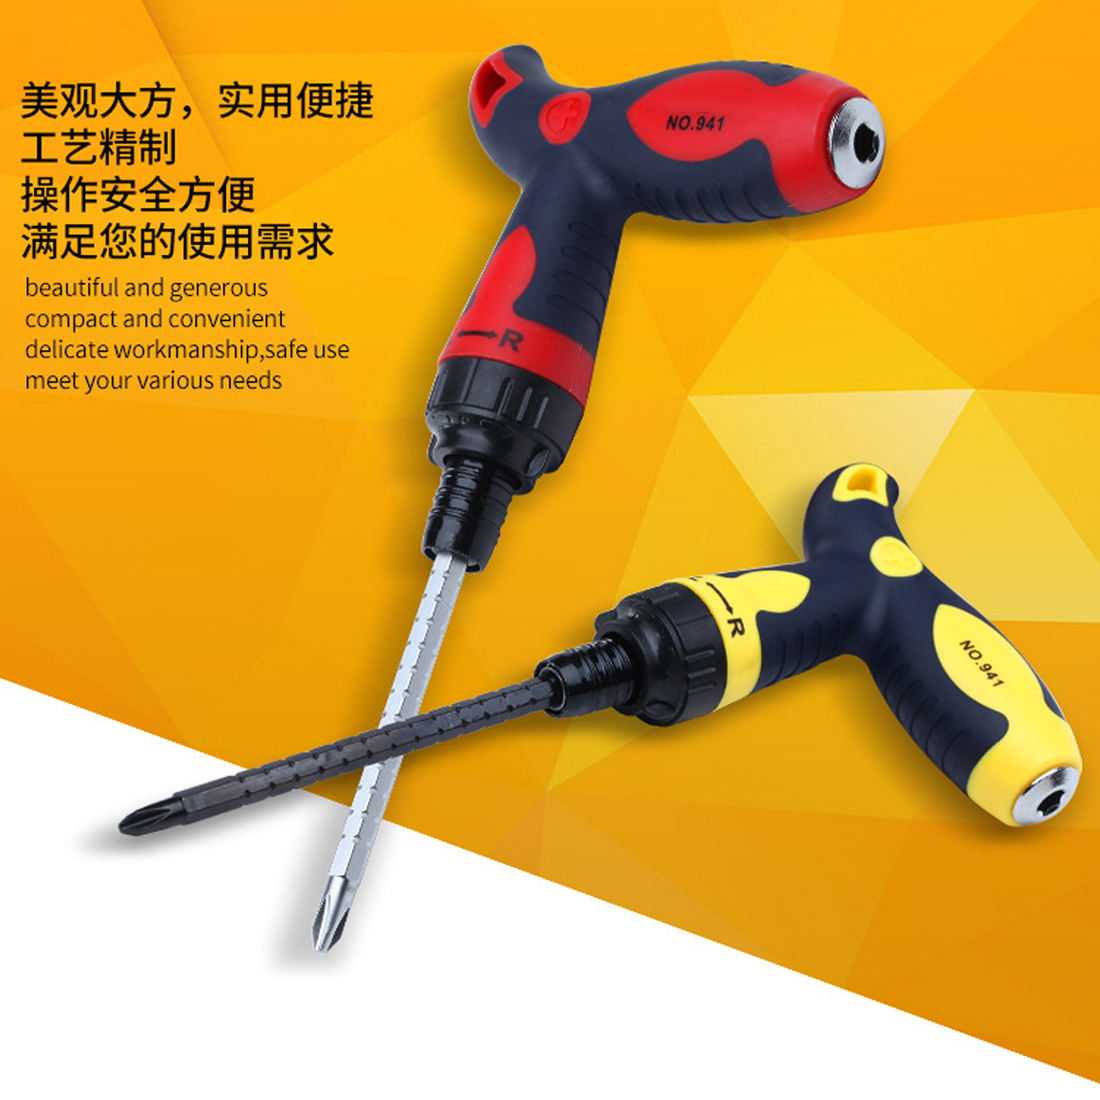 1PCS Screwdriver T-type Anti-slip Alloy Steel Multifunctional T Handle Ratchet Screwdriver Repair Hand Tools High-quality